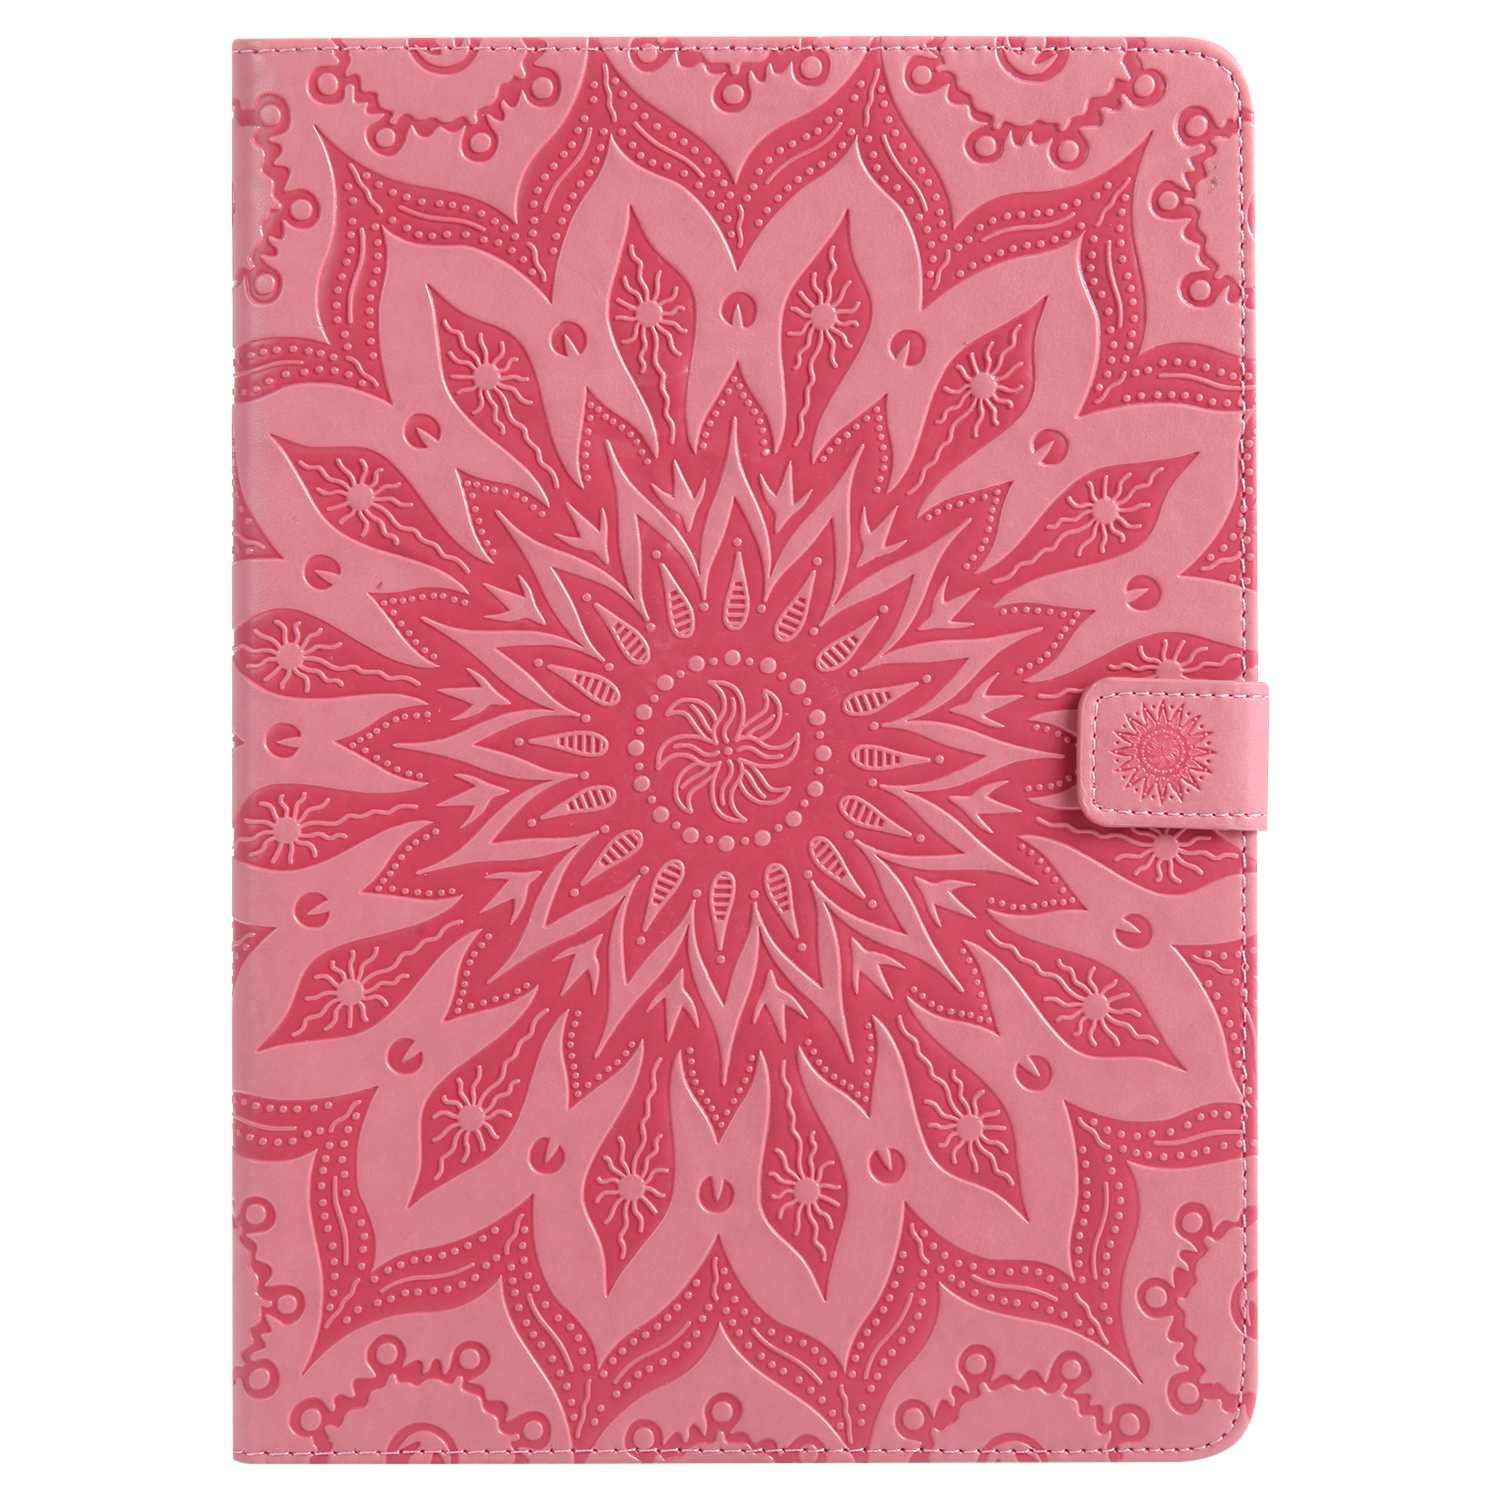 Bear Village iPad Pro 9.7 Inch Case, Anti Scratch Shell with Adjust Stand, Full Body Protective Cover for Apple iPad Pro 9.7 Inch, Pink by Bear Village